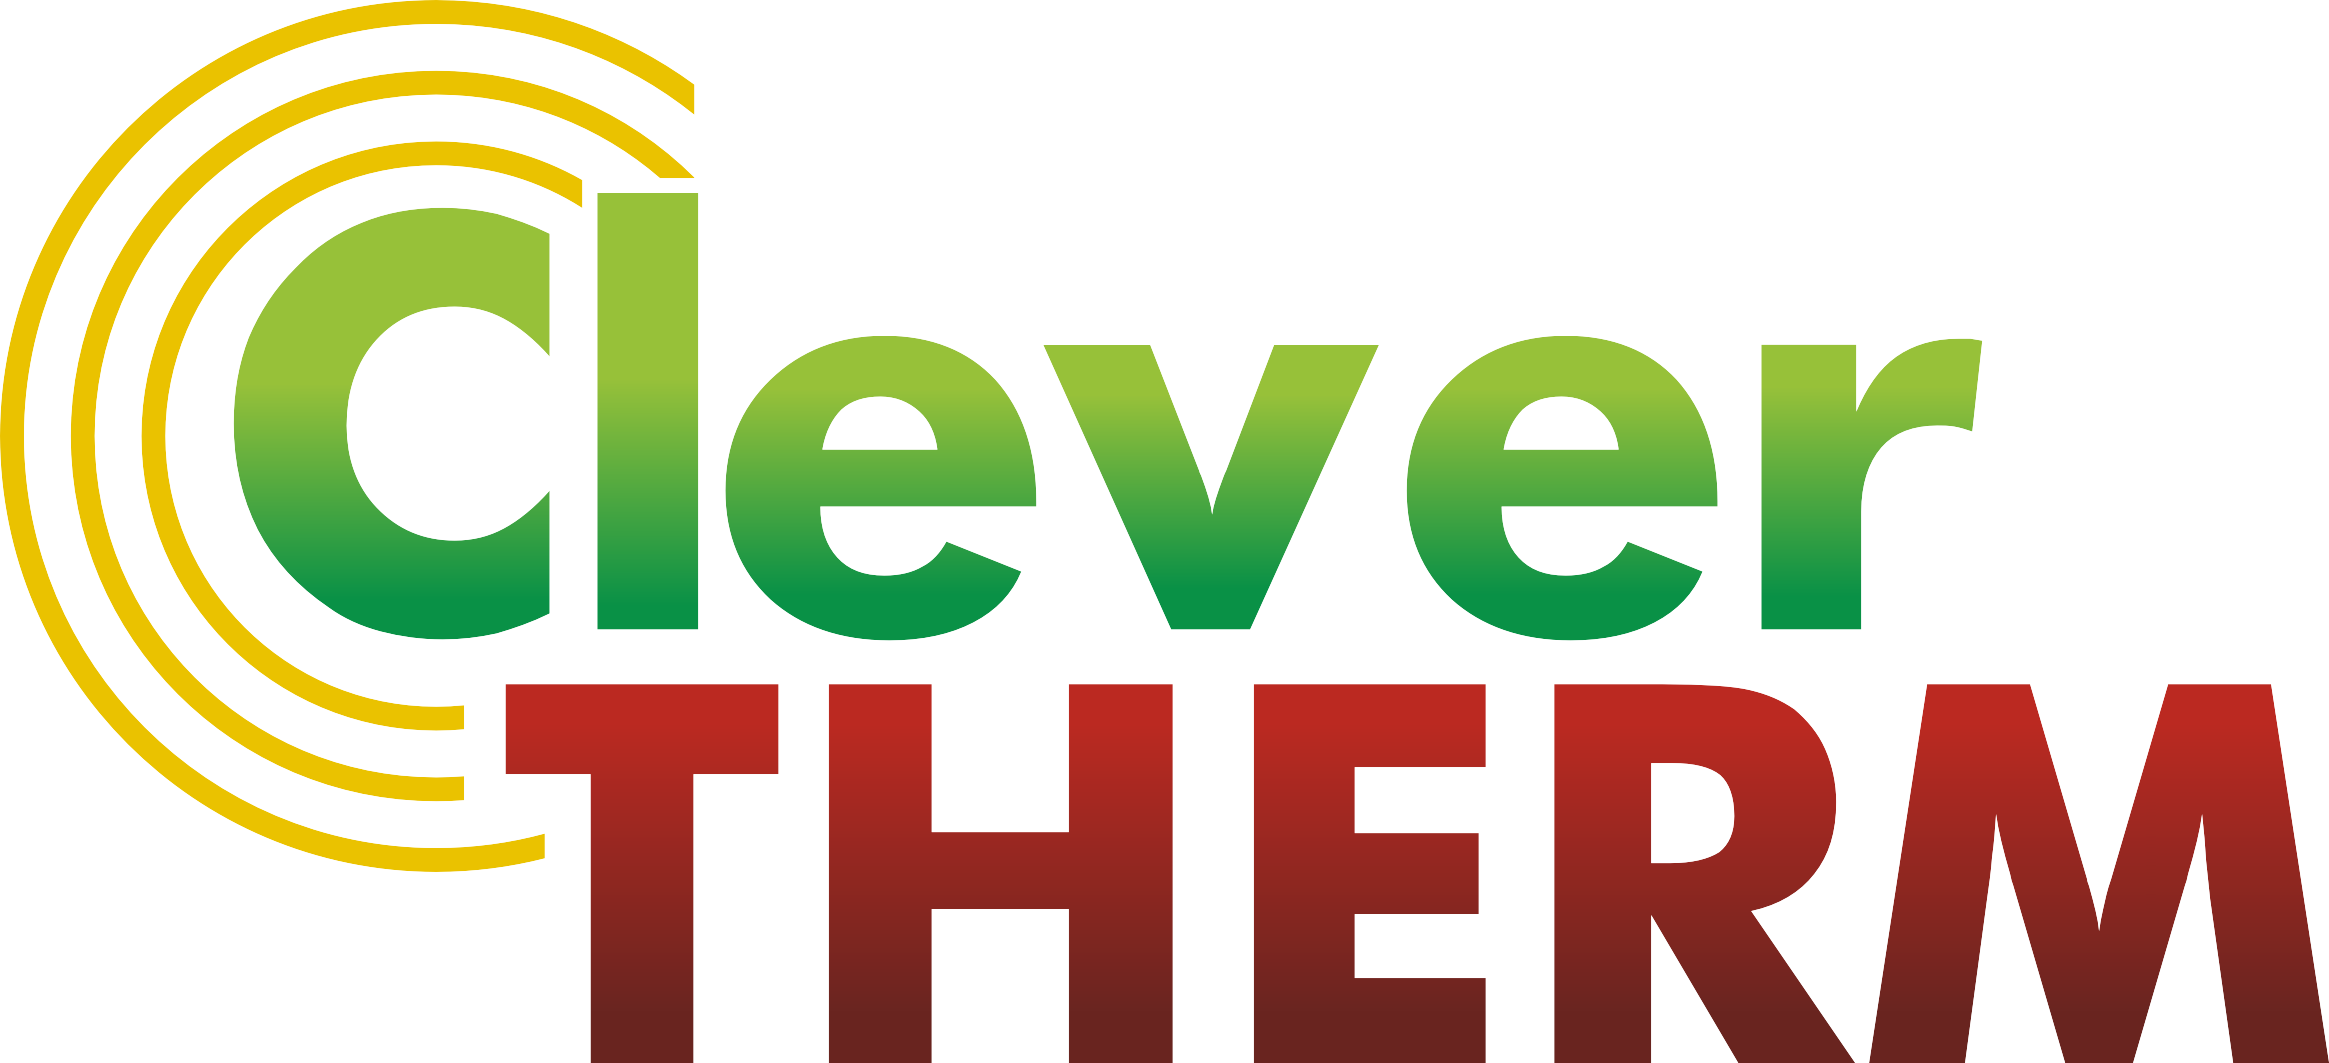 Clevertherm logo